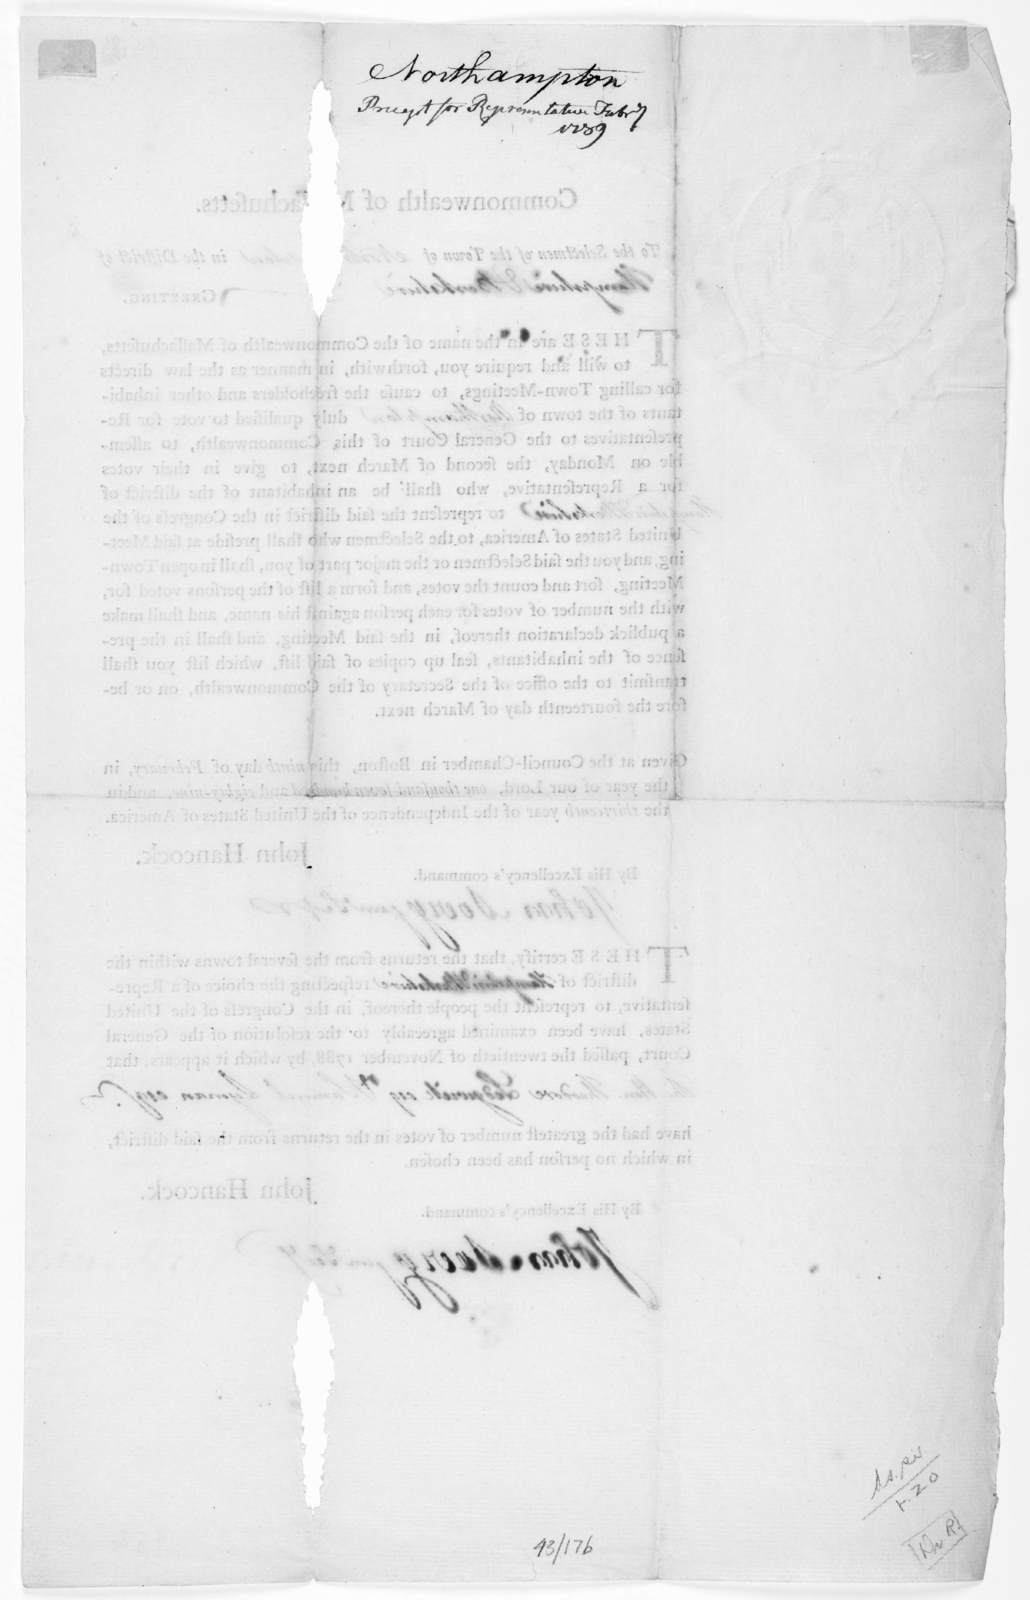 Commonwealth of Massachusetts. To the selectmen of the town of [blank] in the District of [blank] Greeting. These are in the name of the Commonwealth of Massachusetts, to will and require you, forthwith, in manner as the law directs ... this nin